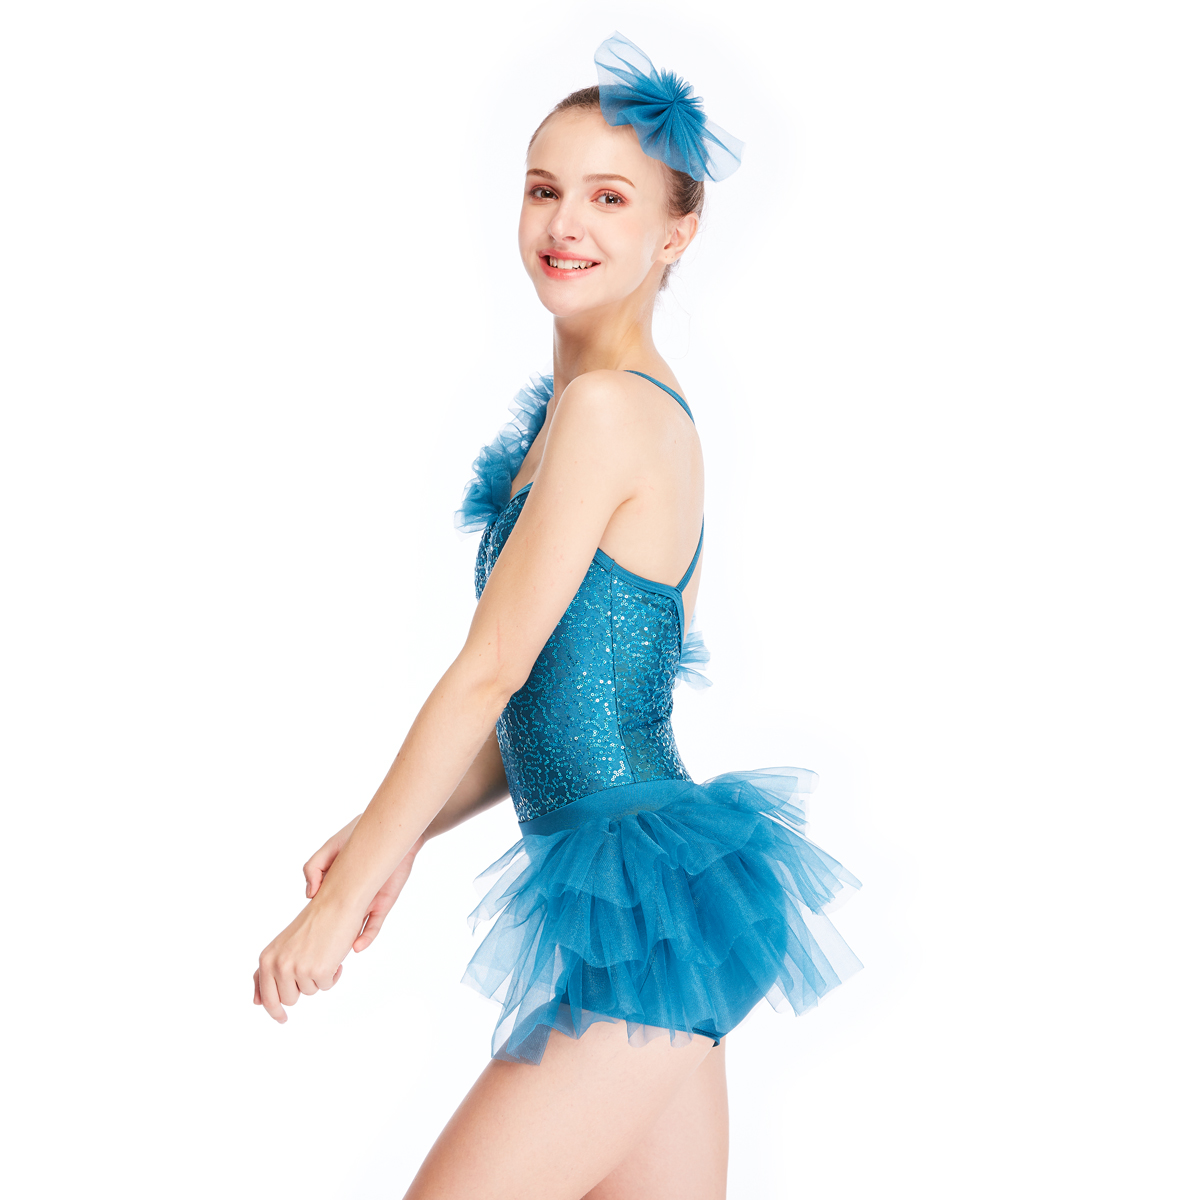 adjustable ballet attire shoulder factory price show-2